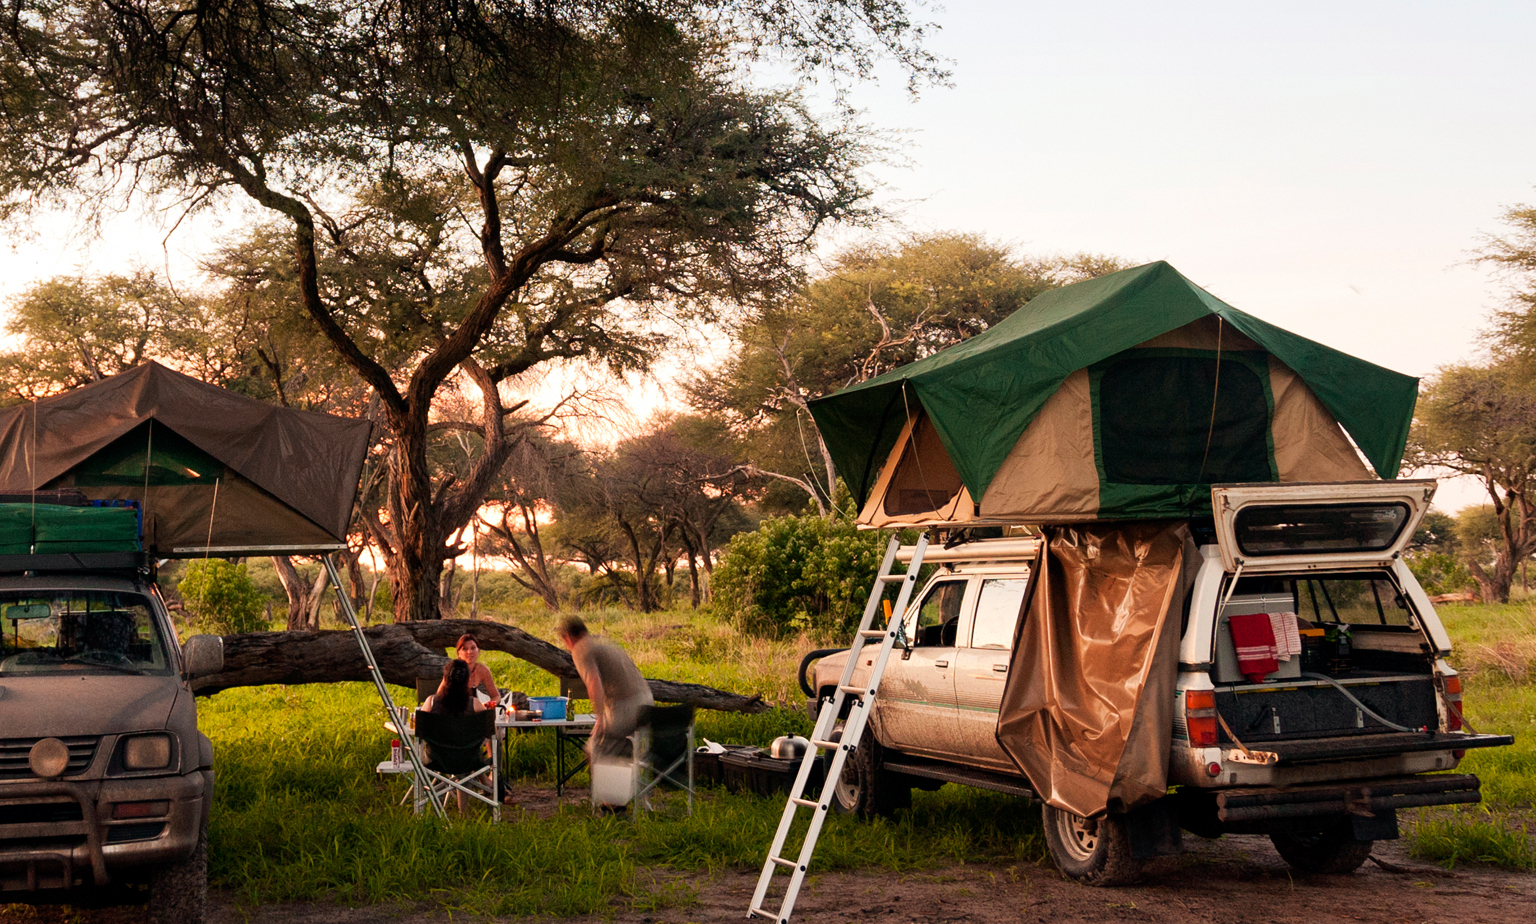 Gear Up At Outbax Camping